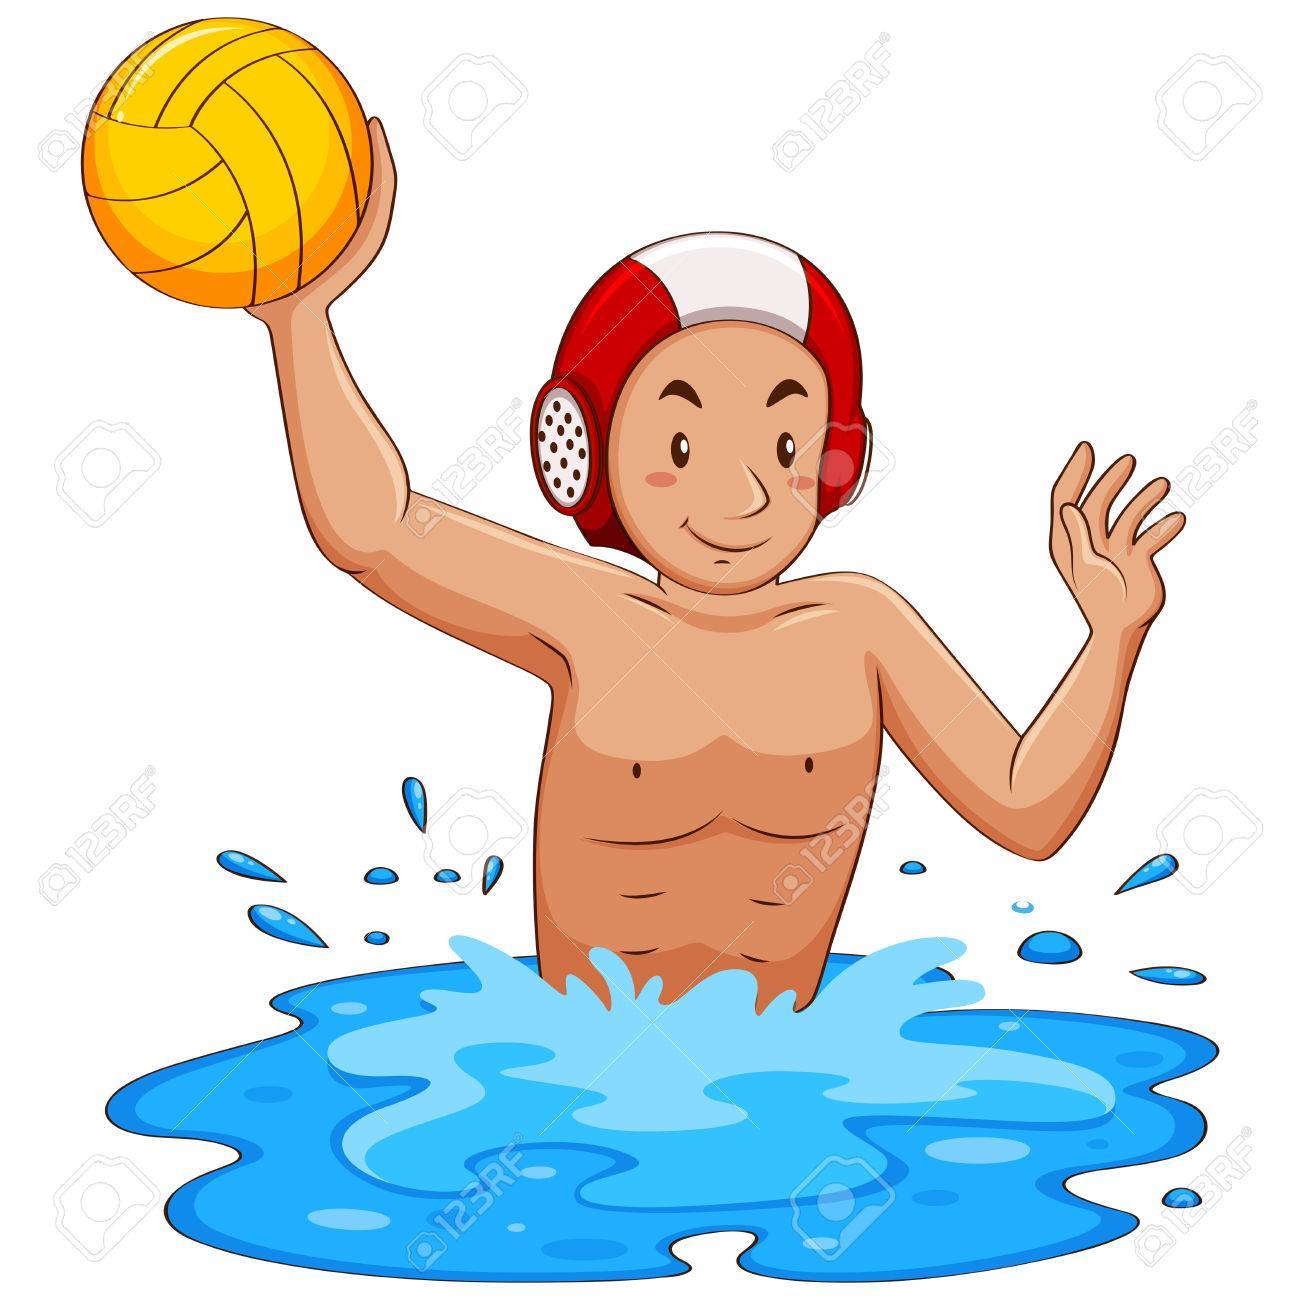 1 290 water polo stock illustrations cliparts and royalty free rh 123rf com water polo ball clipart water polo images clip art